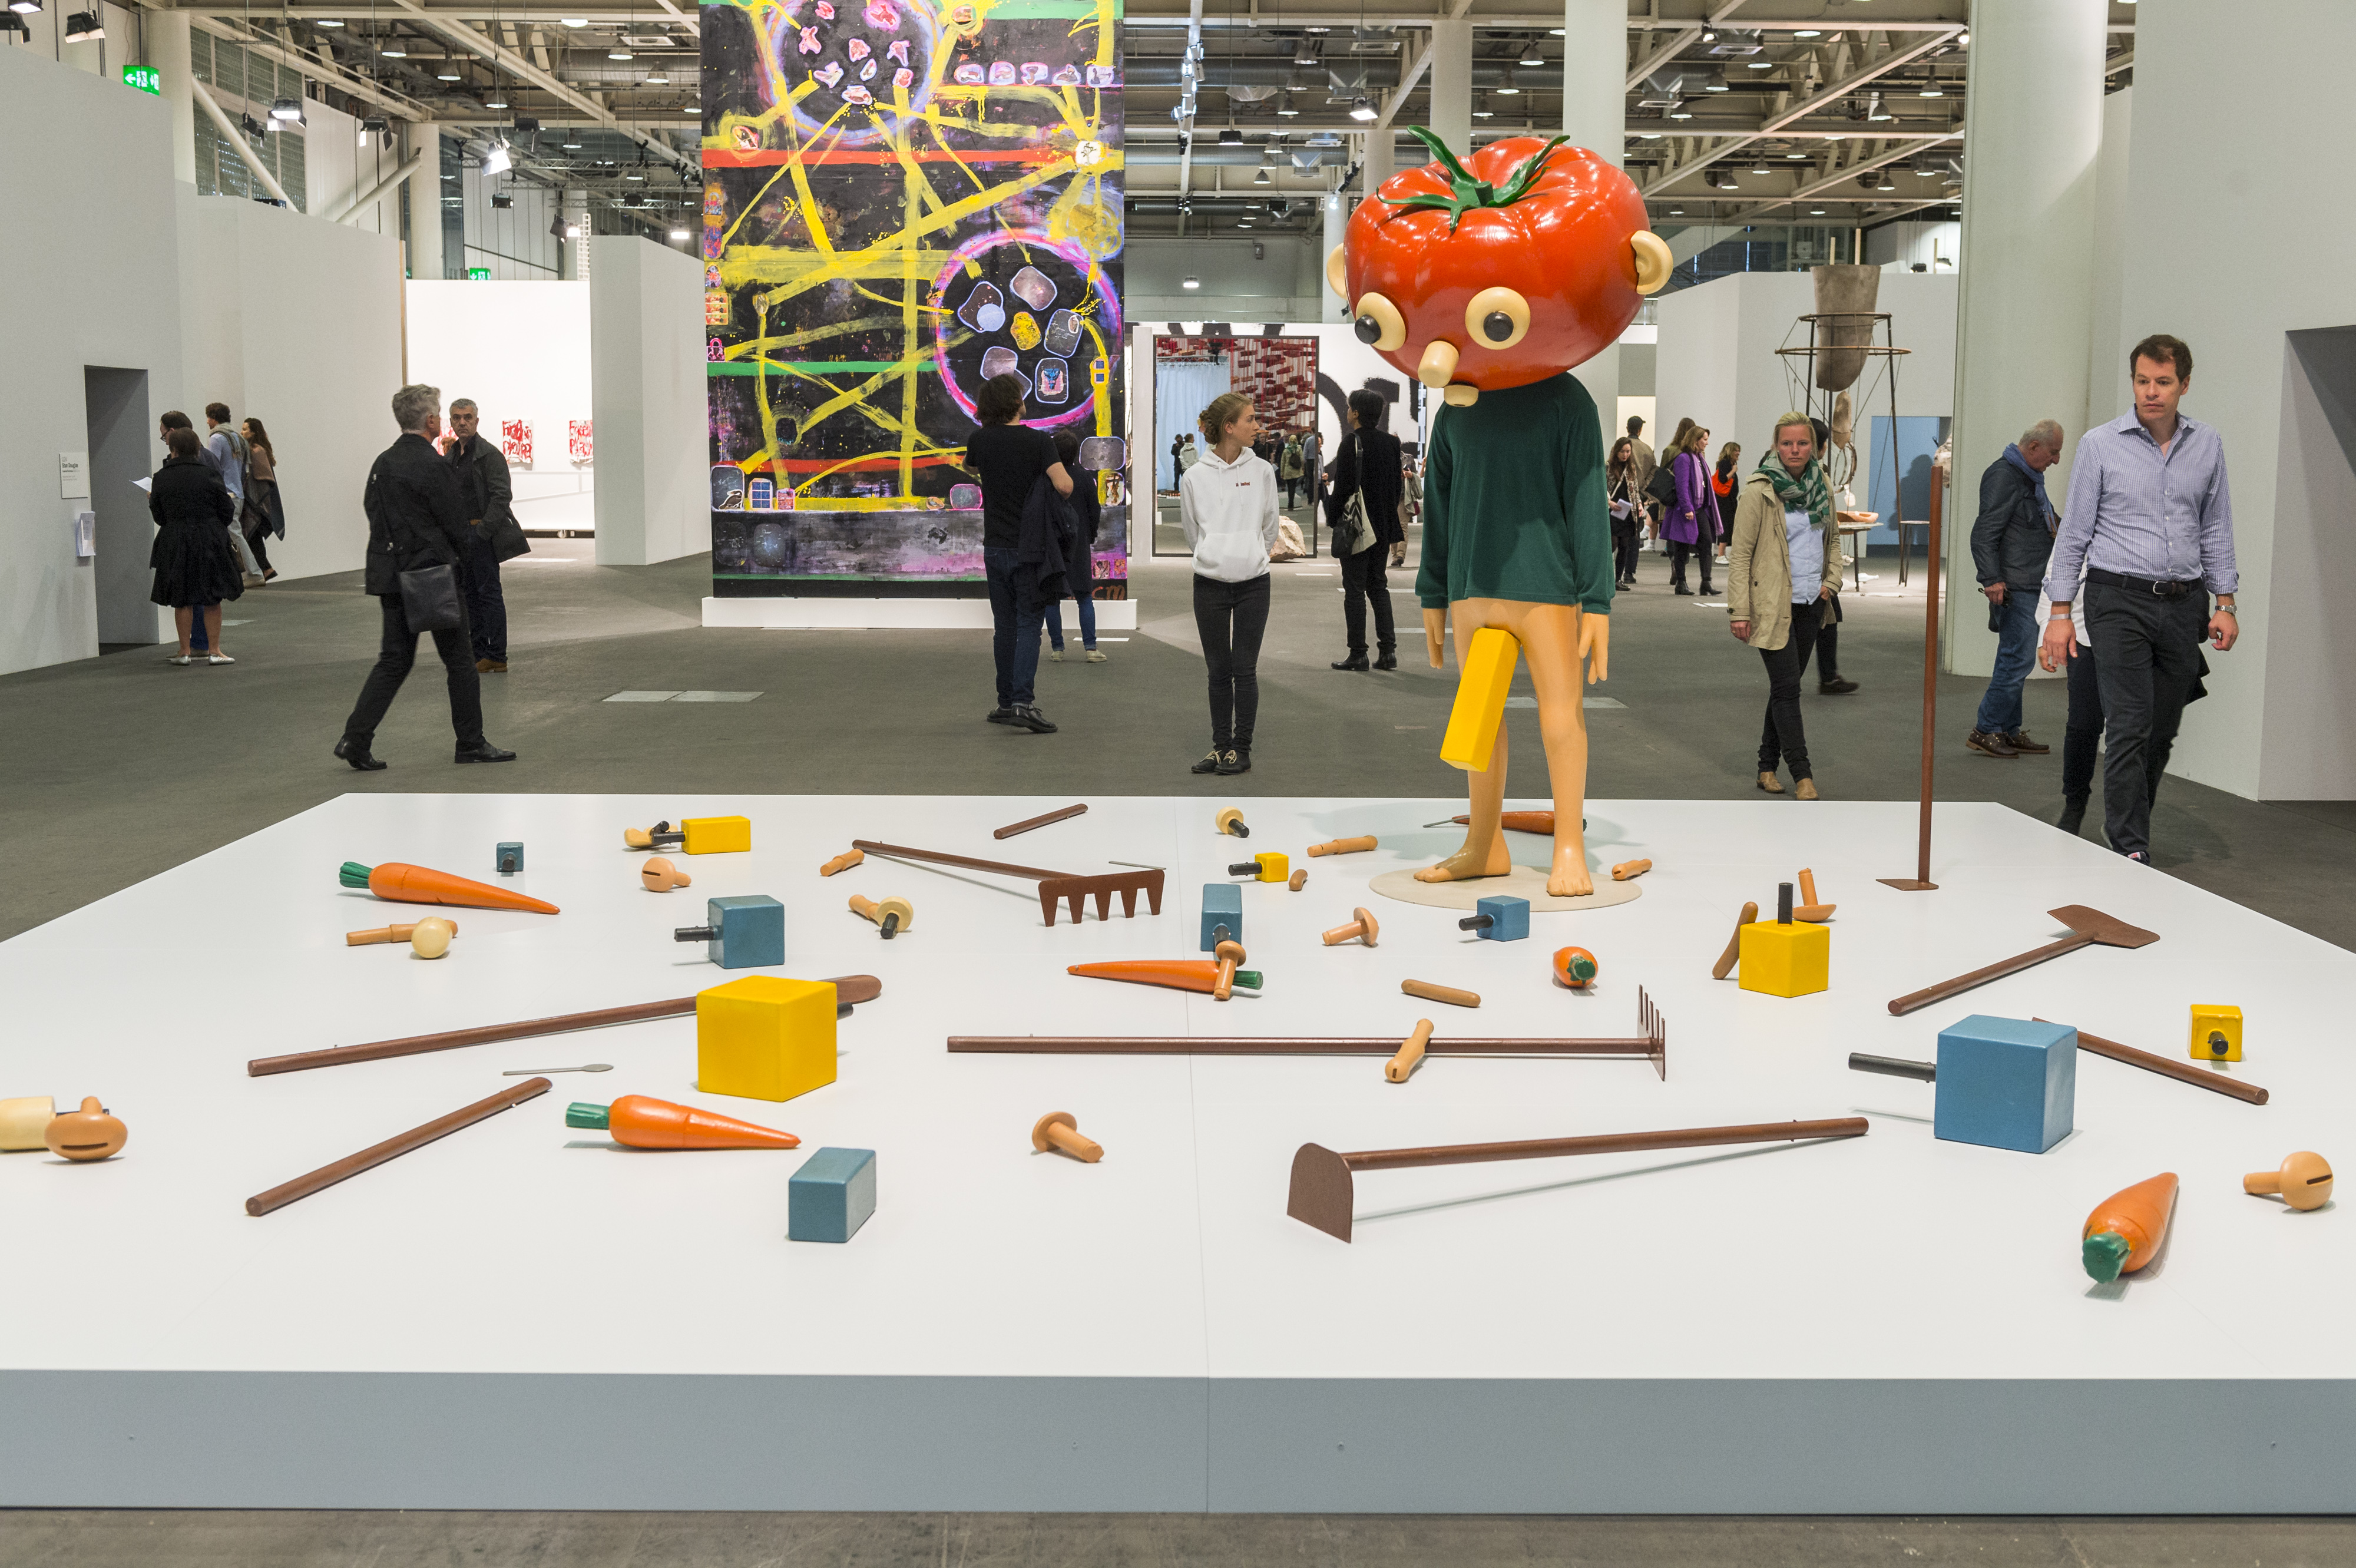 ABB16__Hauser_and_Wirth__Paul_McCarthy__PR__Unlimited___DSC0355.j_HiRes